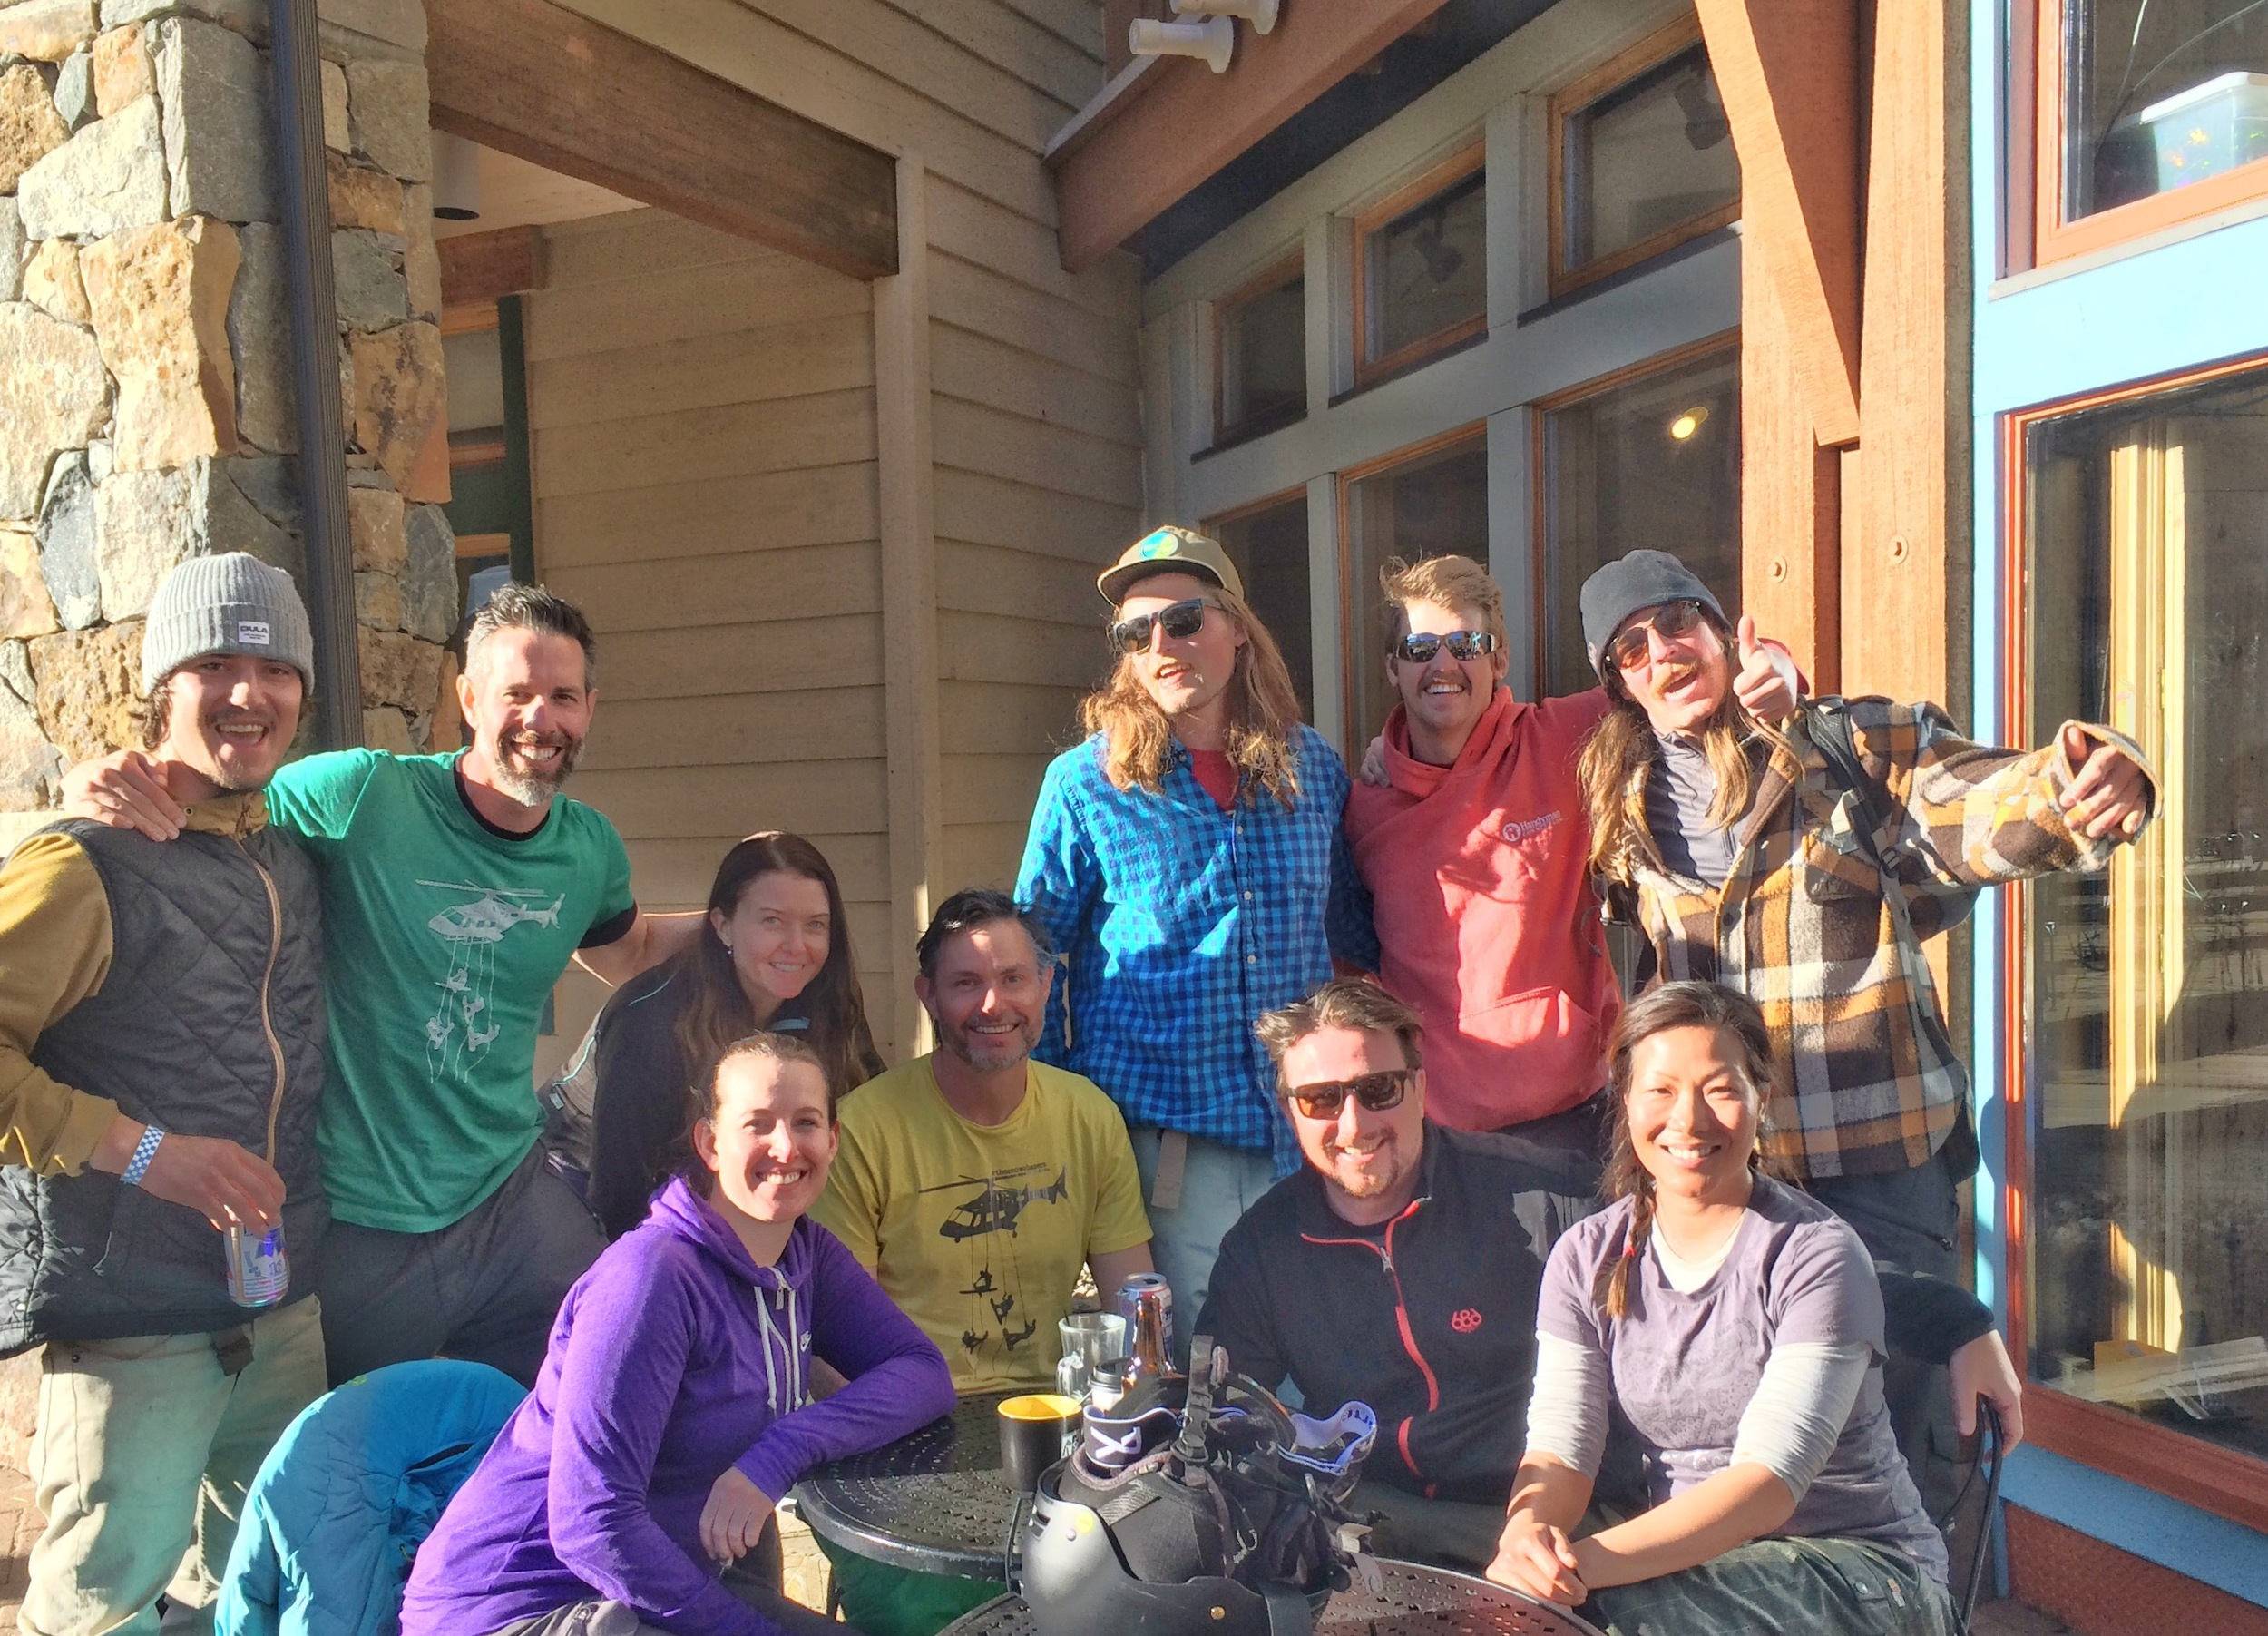 Meeting up with some of the local characters at Keystone.